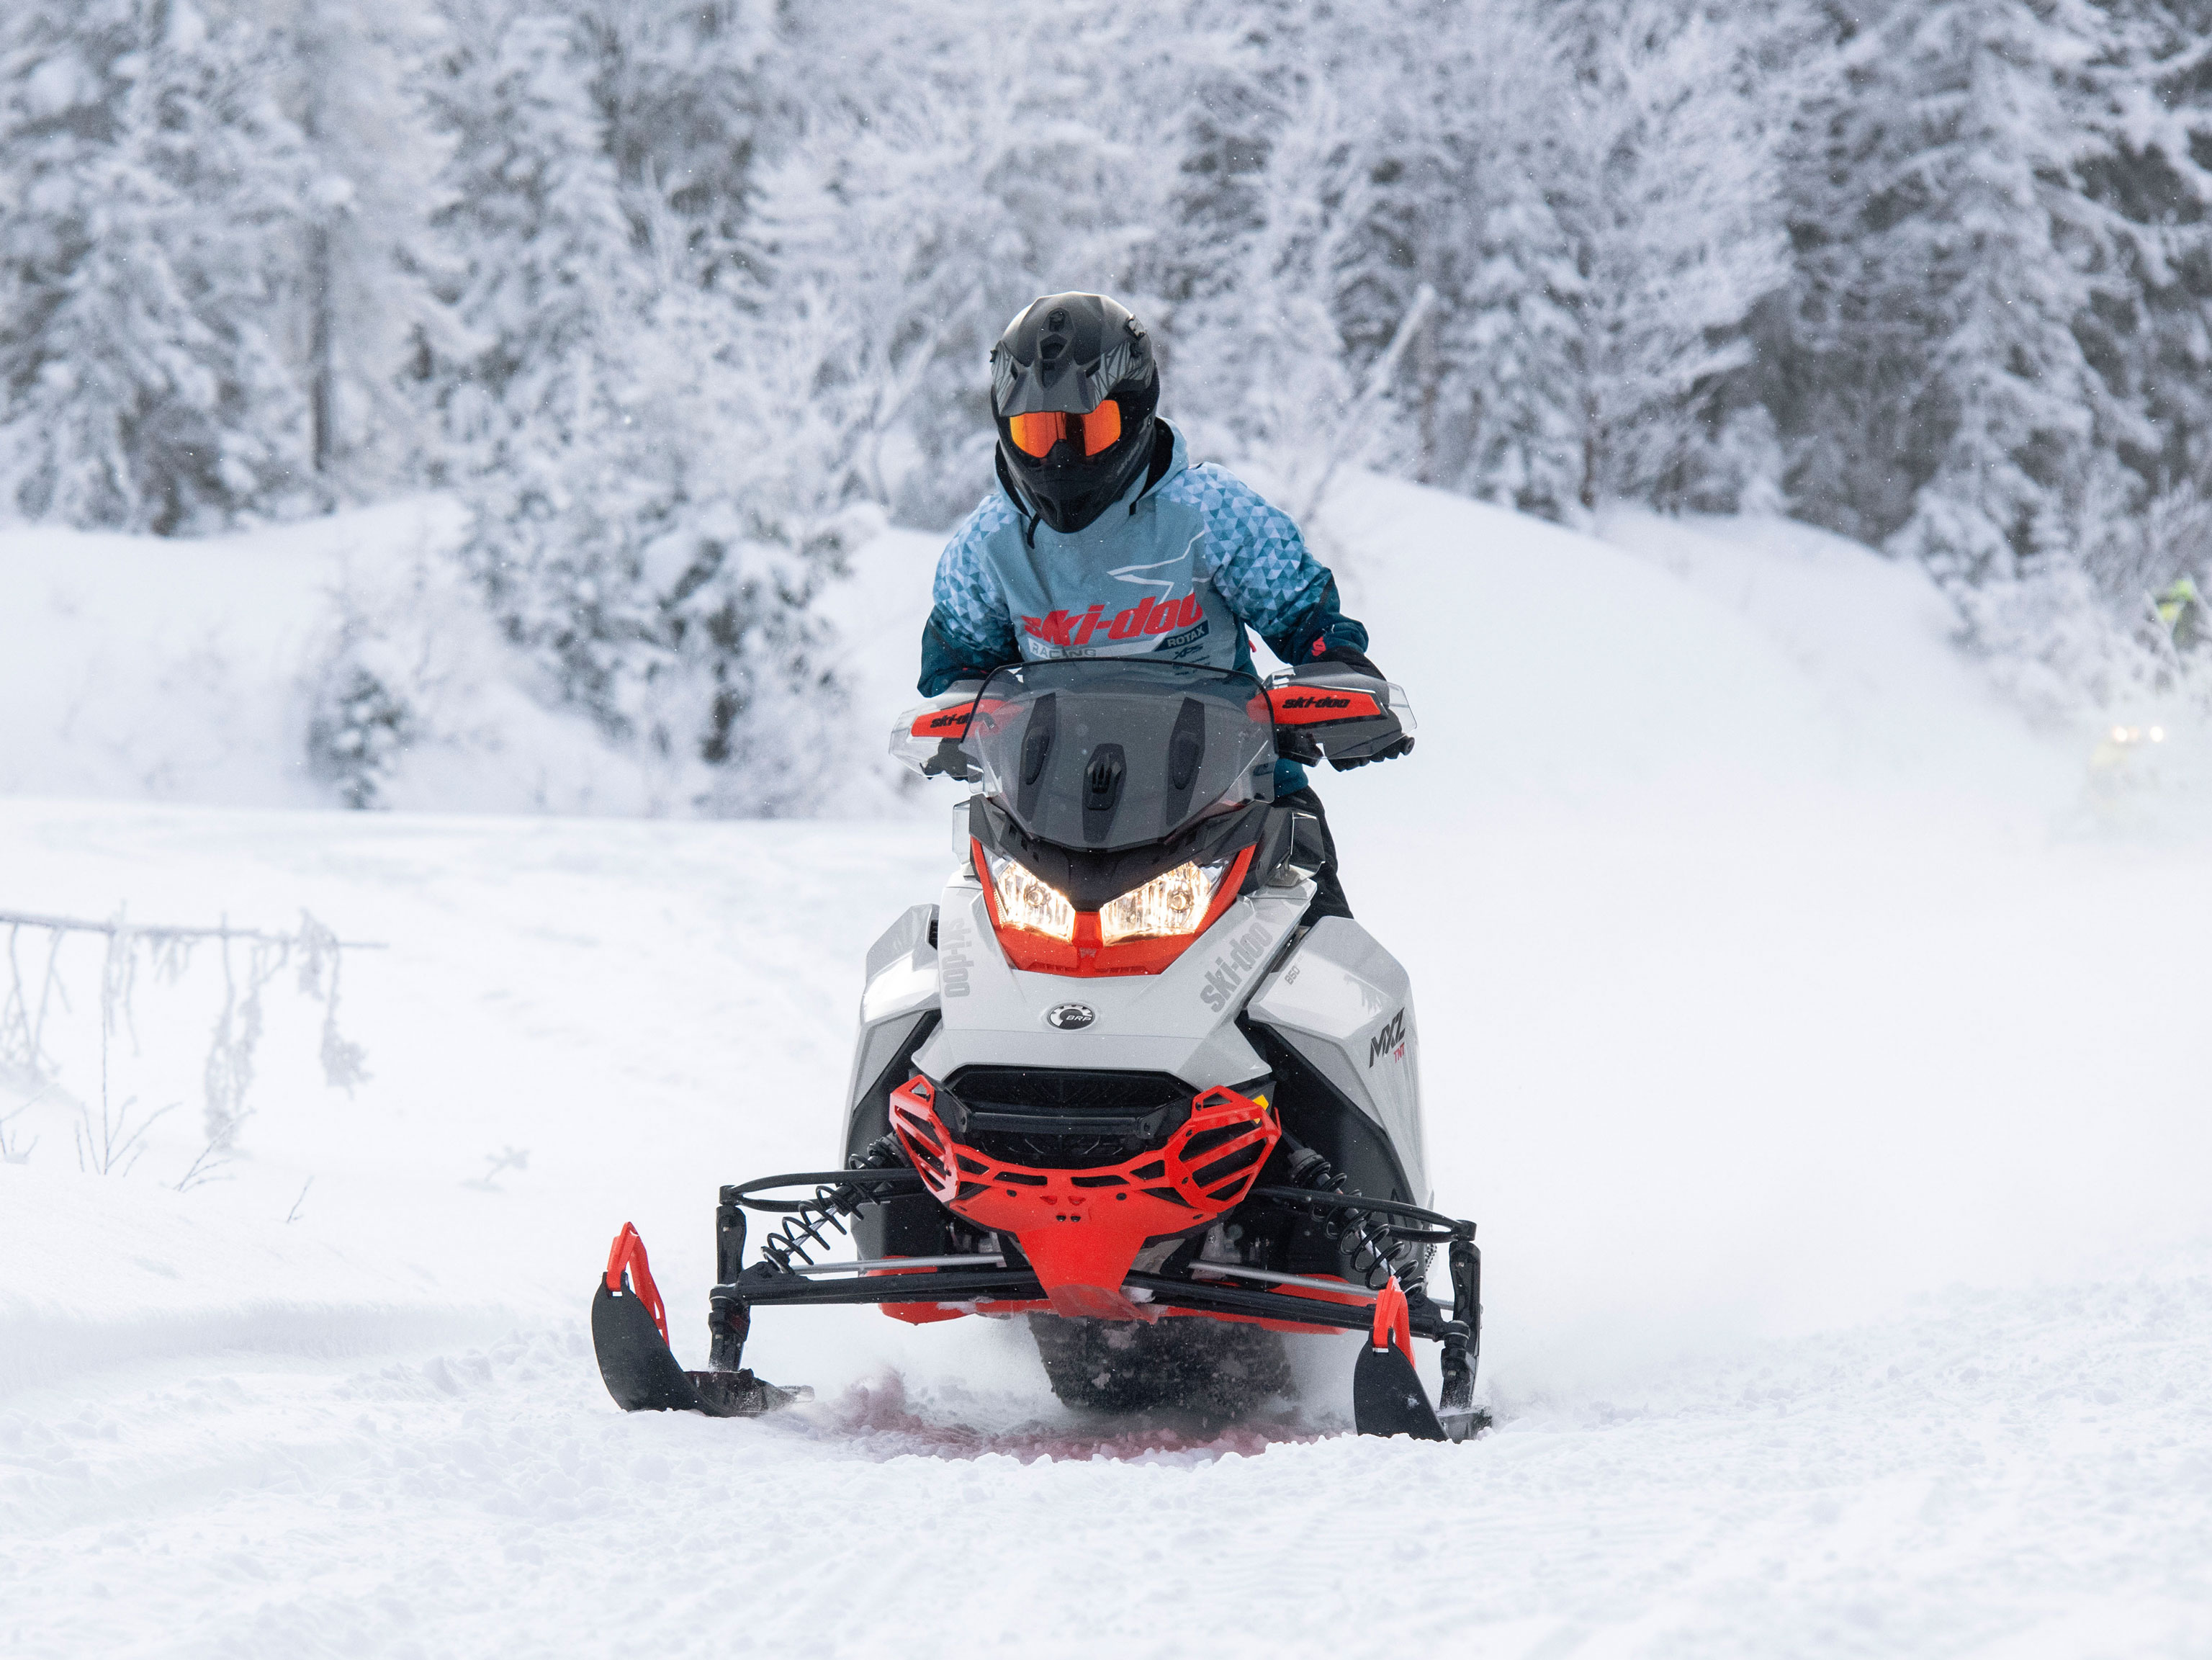 2022 Ski-Doo MXZ on a snowmobile trail